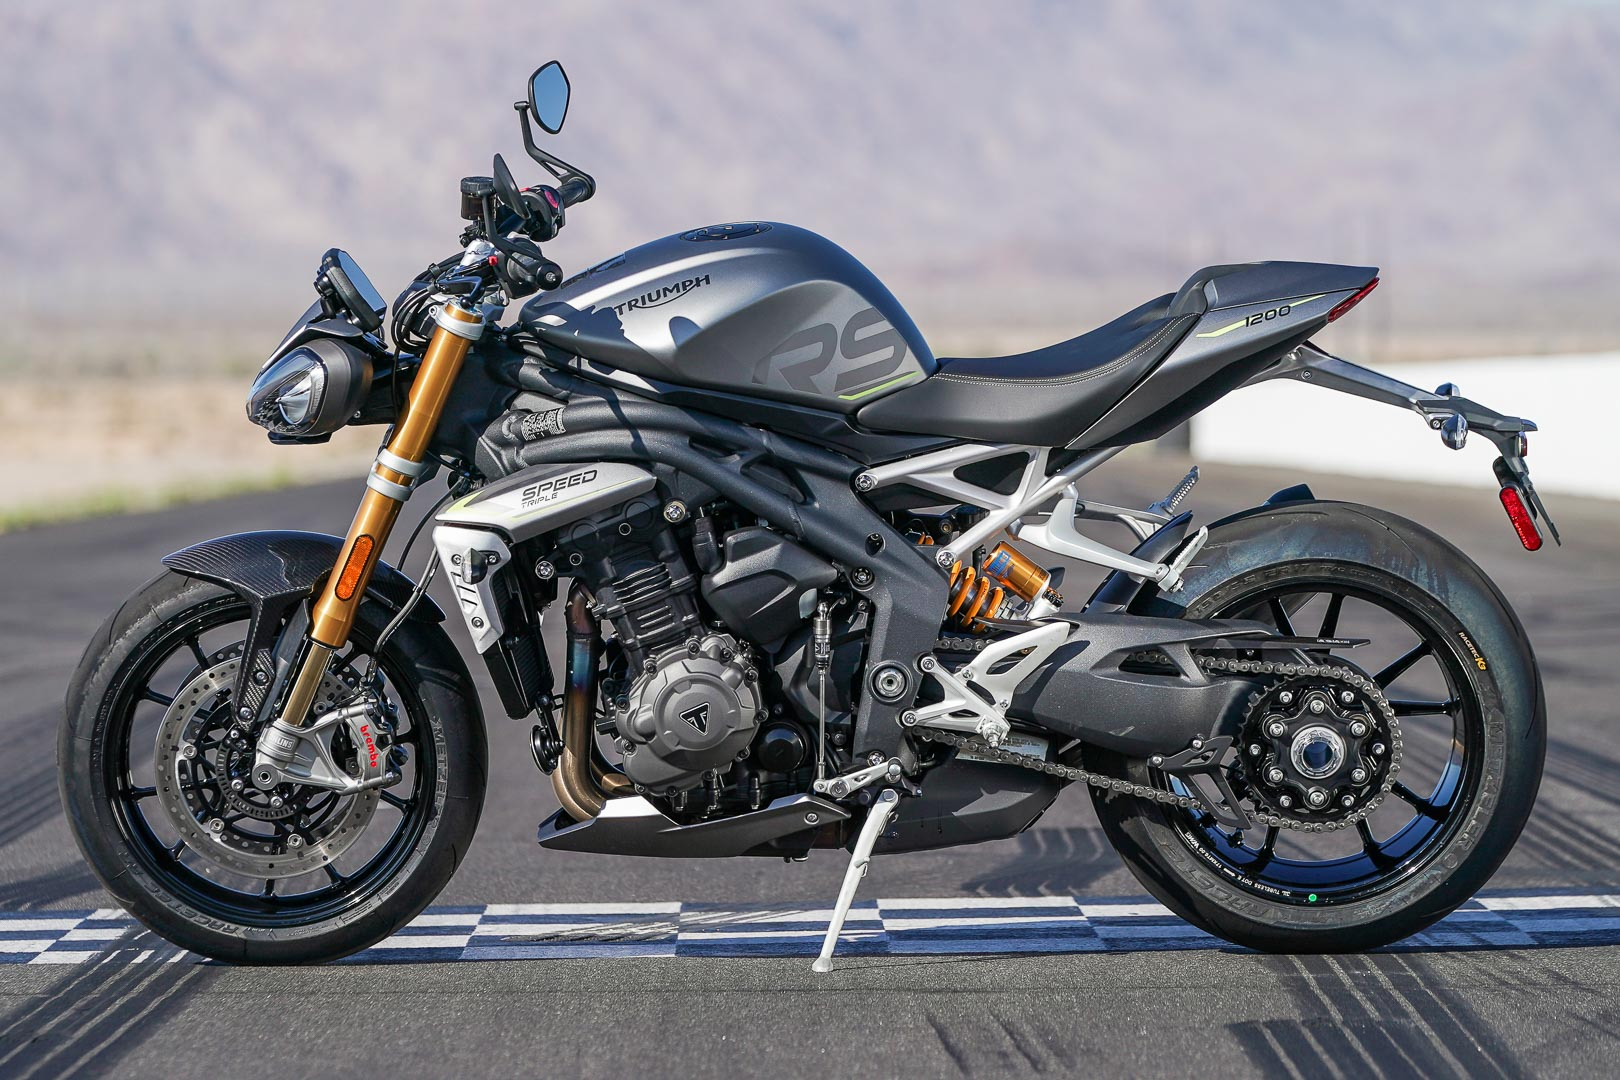 2022 Triumph Speed Triple 1200 Review: RS MSRP